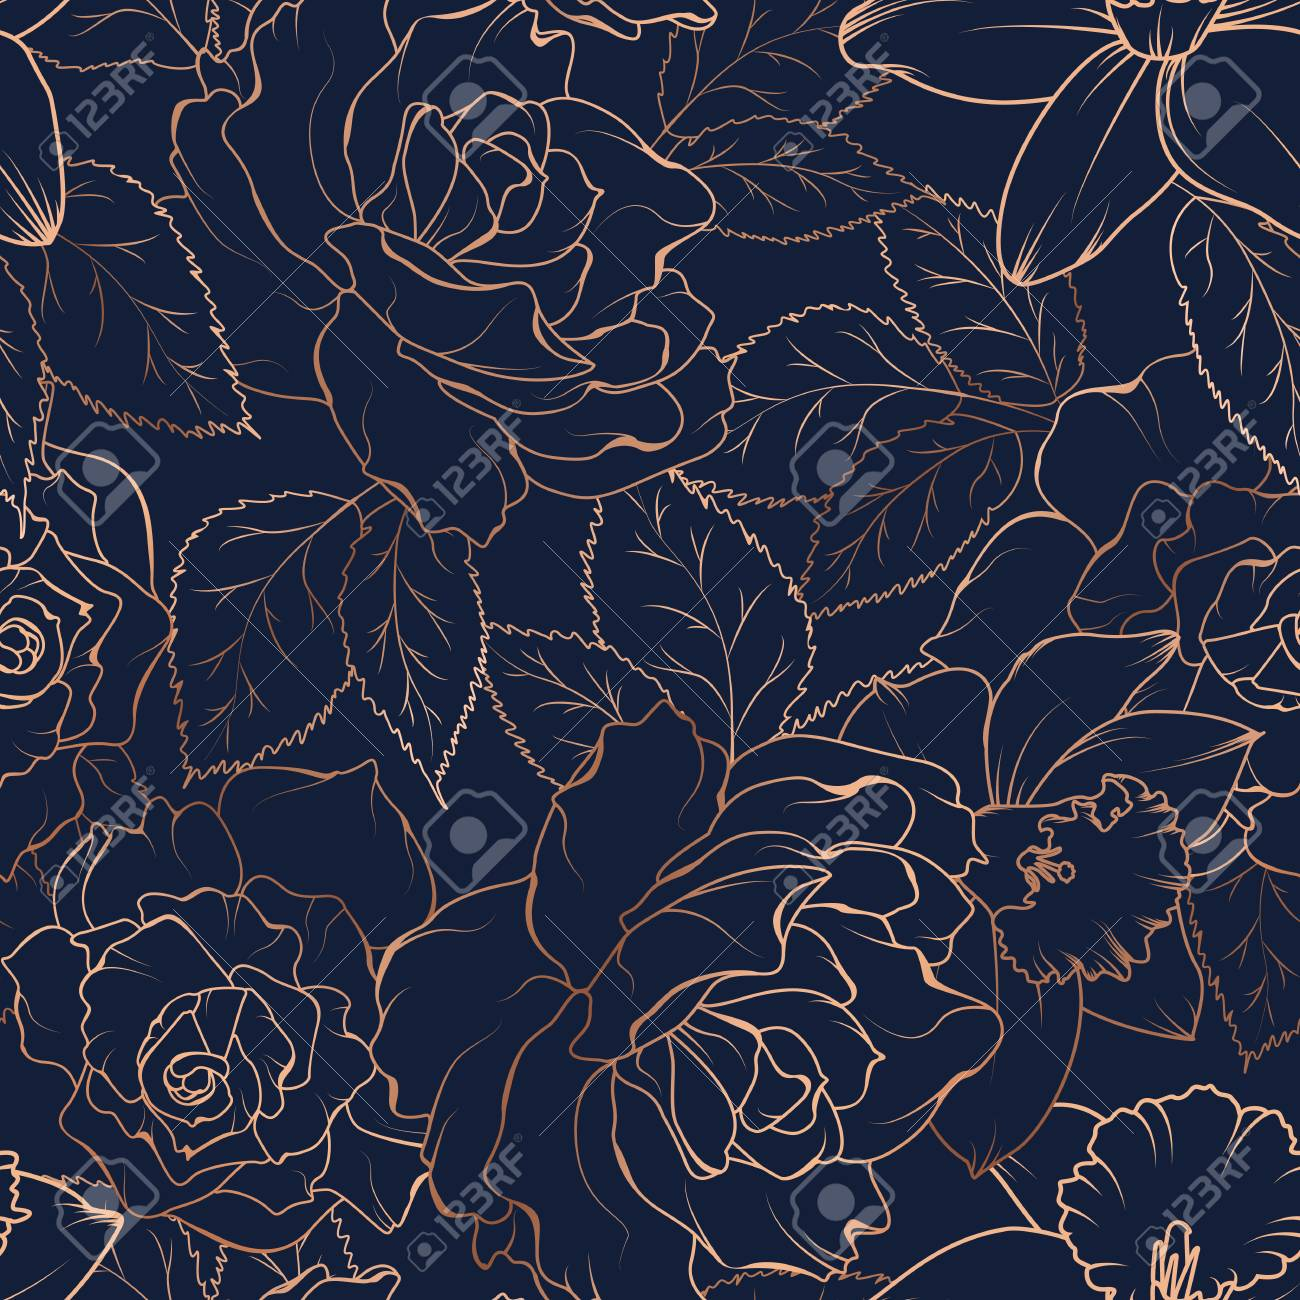 Floral spring seamless pattern. Rose peony daffodil narcissus bloom blossom leaves. Copper gold shiny outline navy dark blue background. Vector illustration for fashion, textile, fabric, decoration. - 115833145